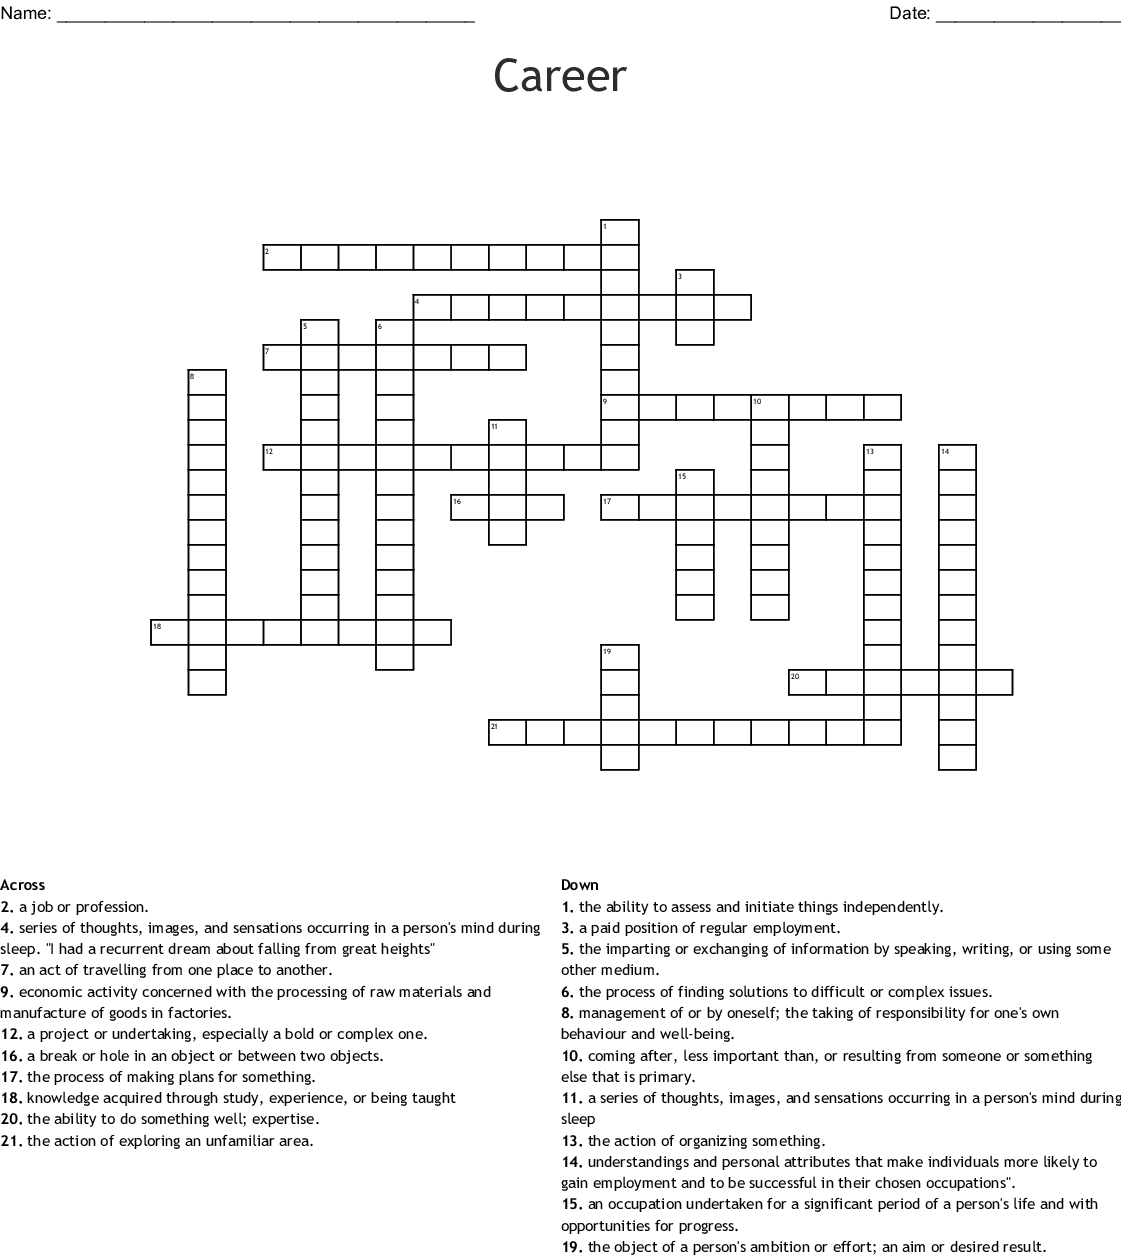 Career Crossword - Wordmint - Printable Crossword Puzzles Job